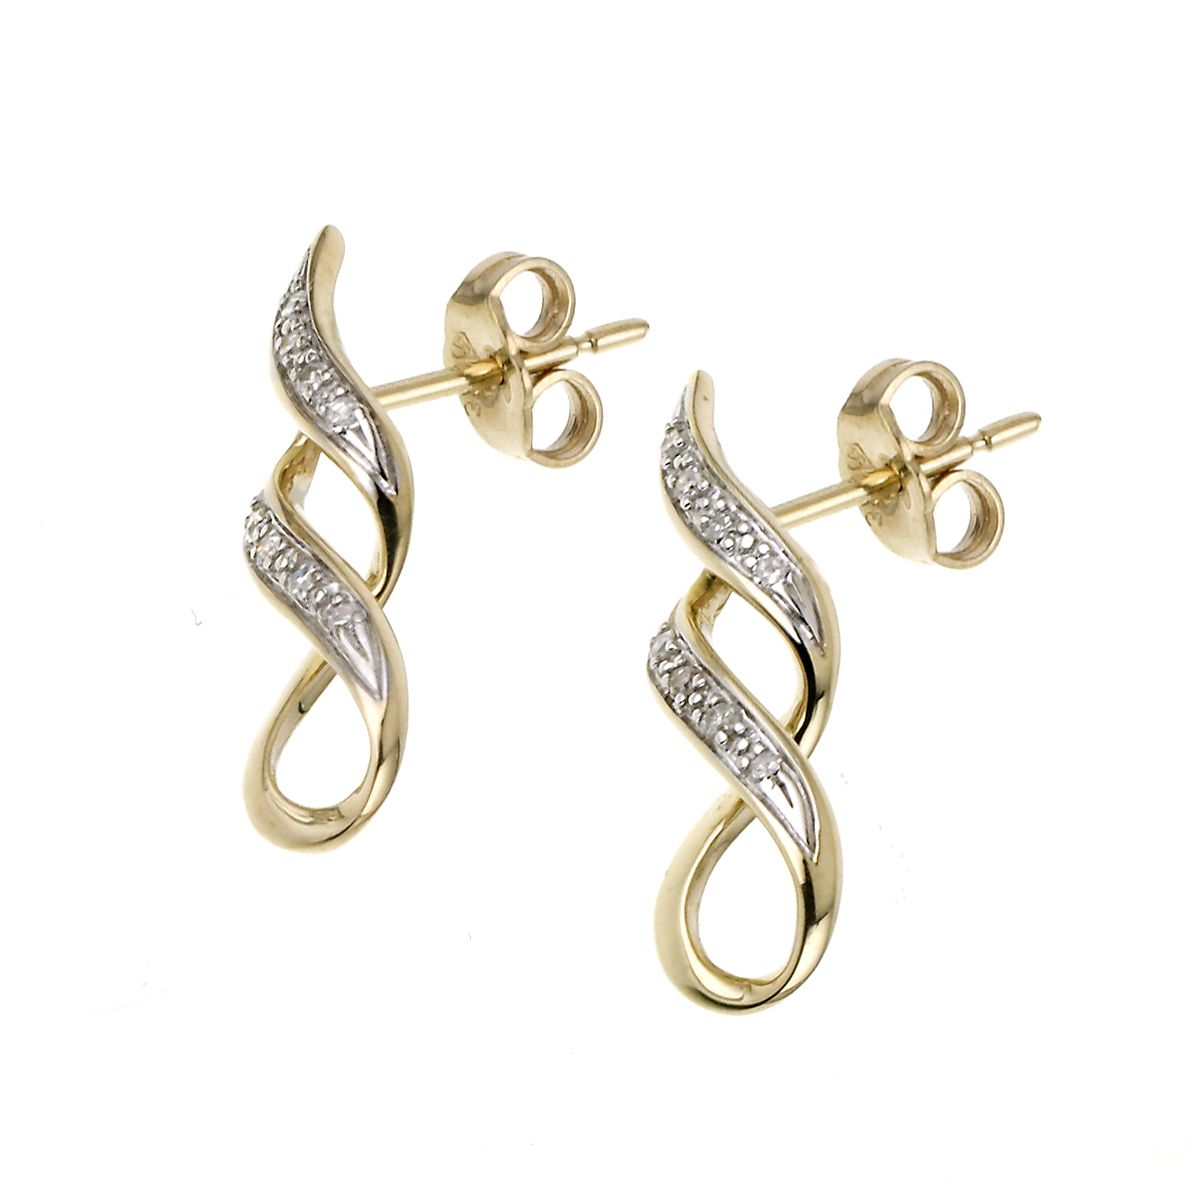 9ct Yellow Gold Diamond Twist Earrings - Product number 6842364